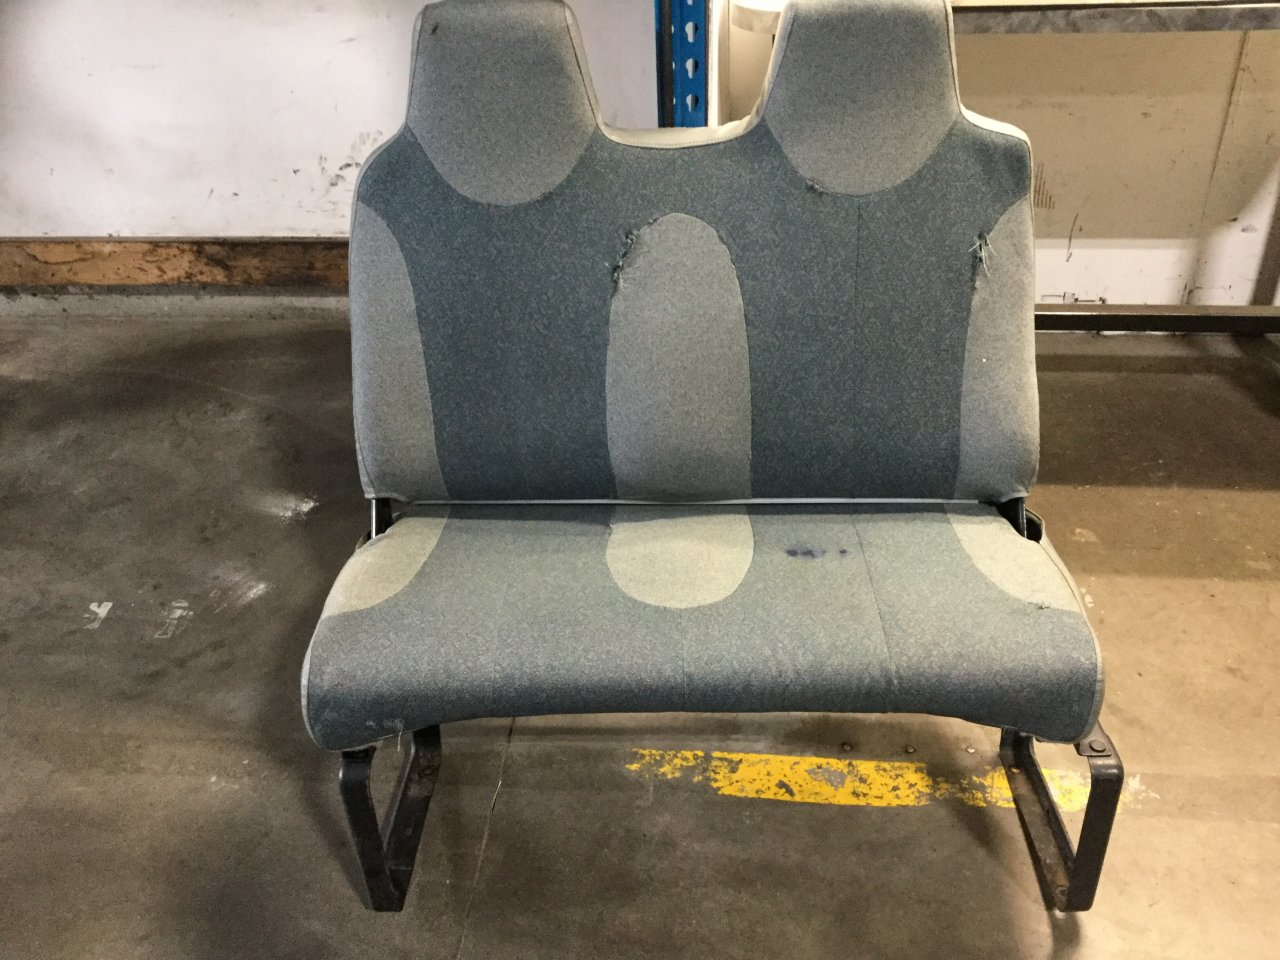 Outstanding International 4300 Seat Non Suspension Evergreenethics Interior Chair Design Evergreenethicsorg